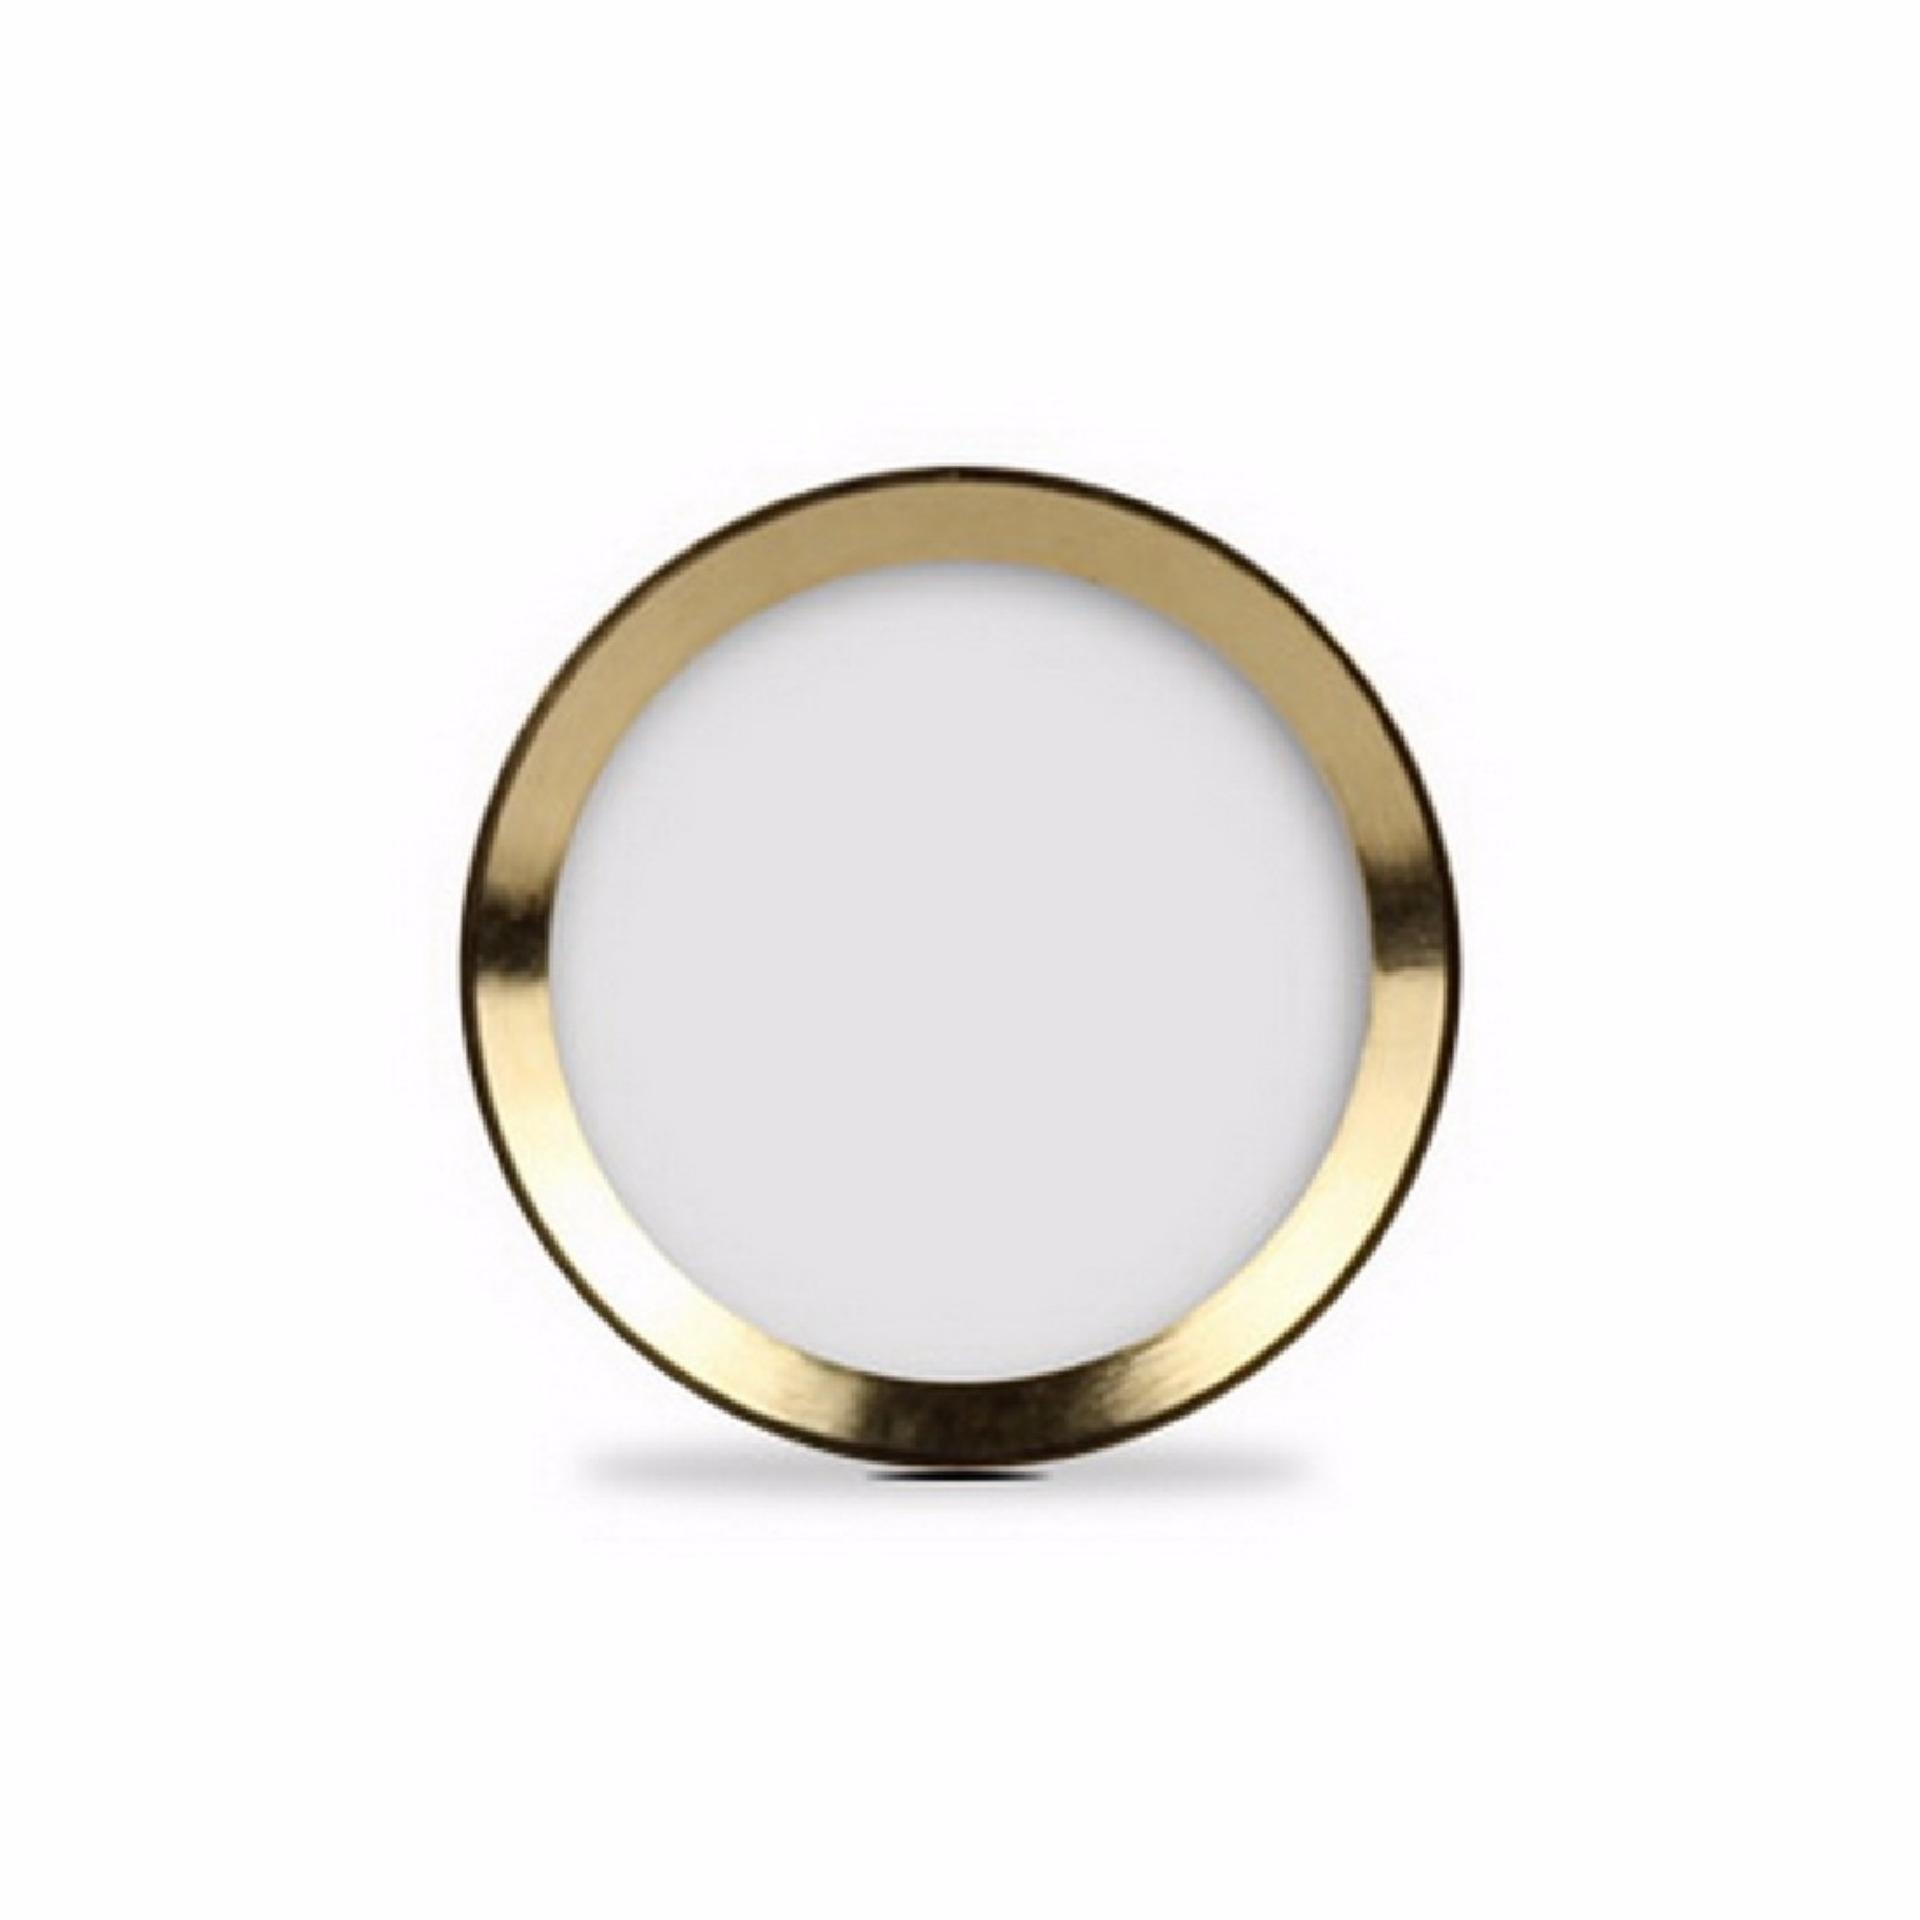 Bendoel Metal Aluminium Touch ID Home Button Sticker for Apple iPhone iPad iPod Mini Air 1 / 2 / 3